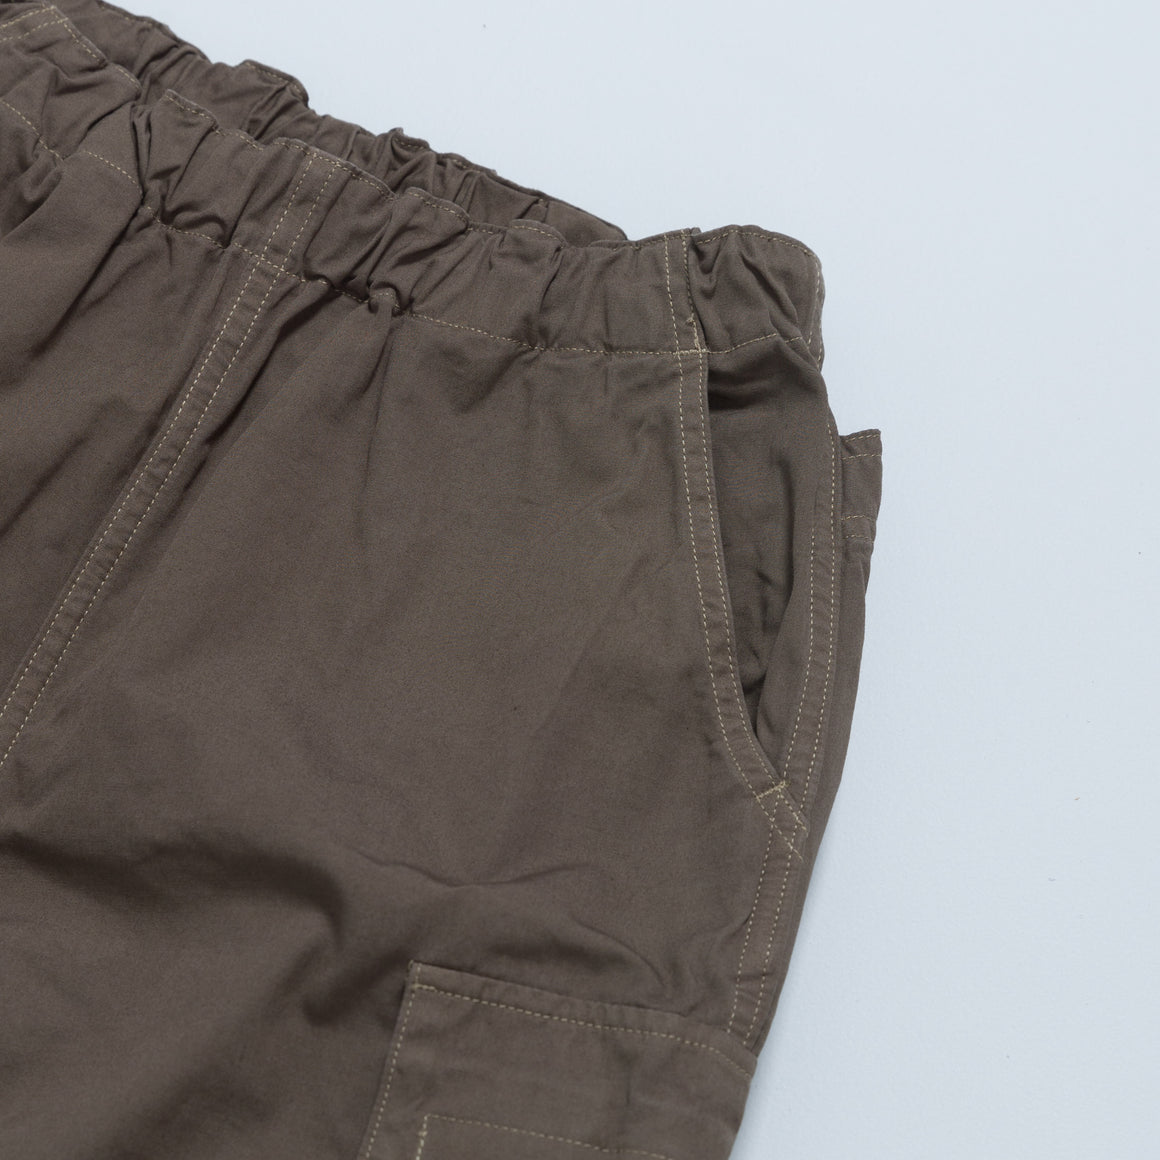 Easy Cargo Pants - Olive Drab - Up There